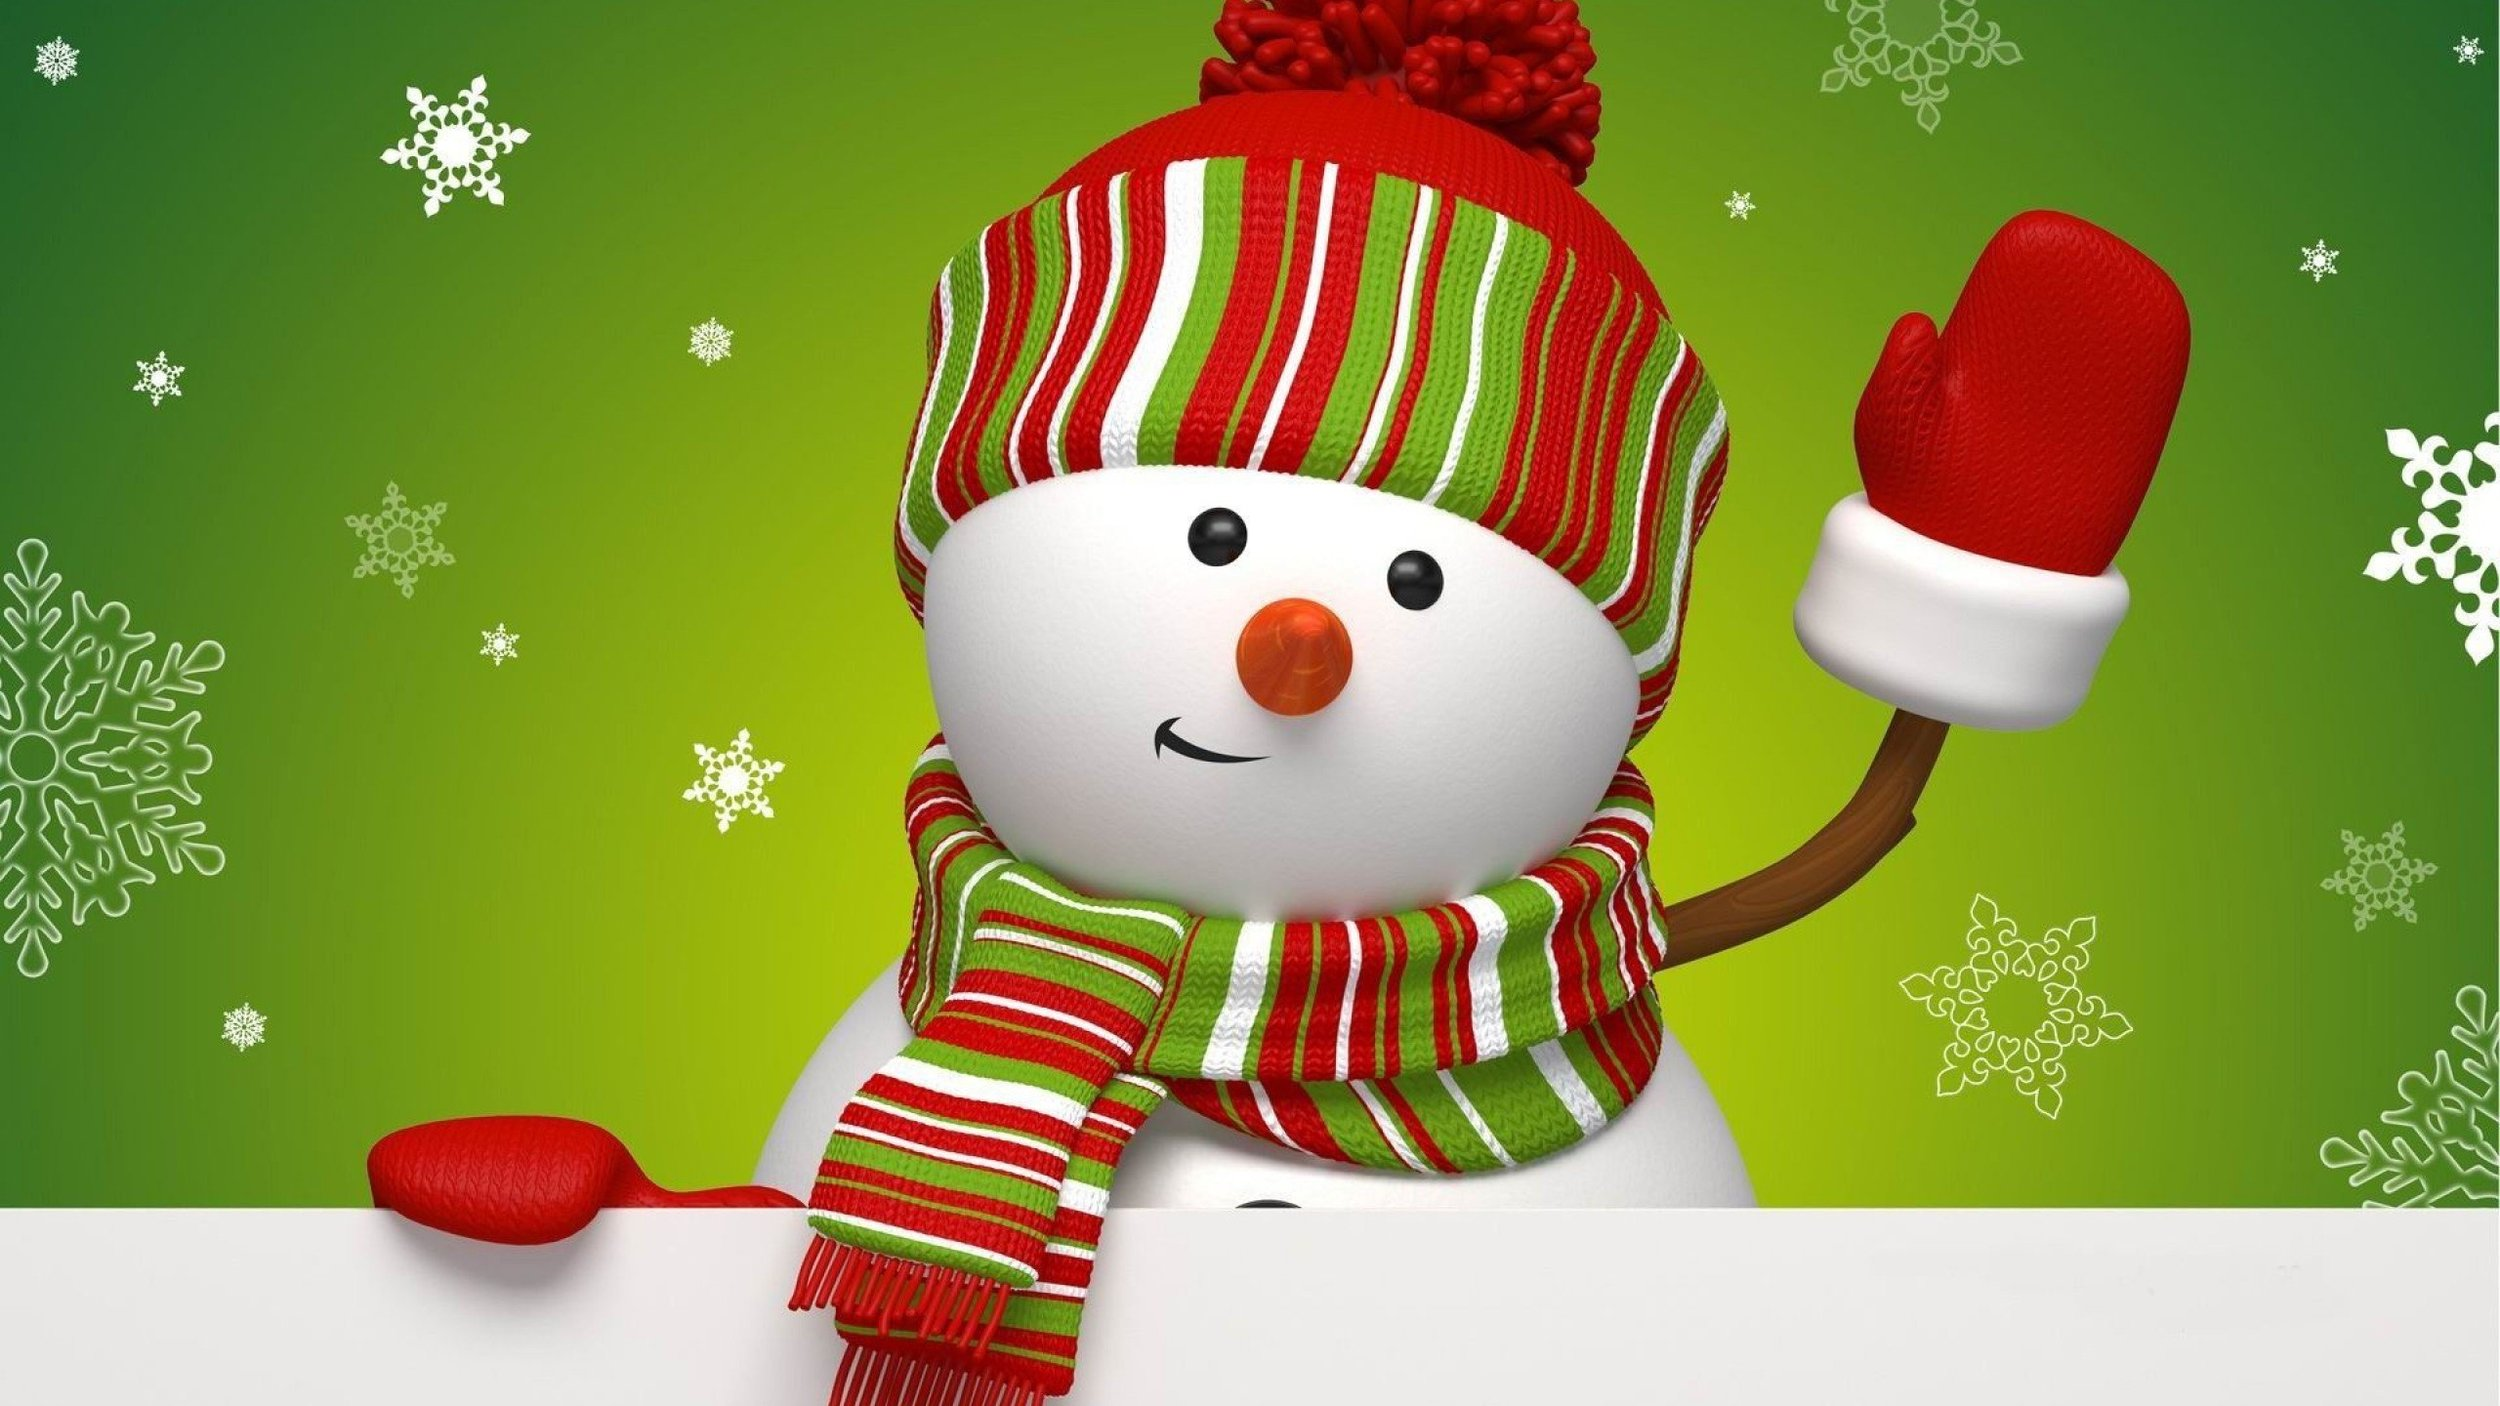 christmas-wallpaper-snowman-aesthetic-cute-anime-wallpapers.jpg